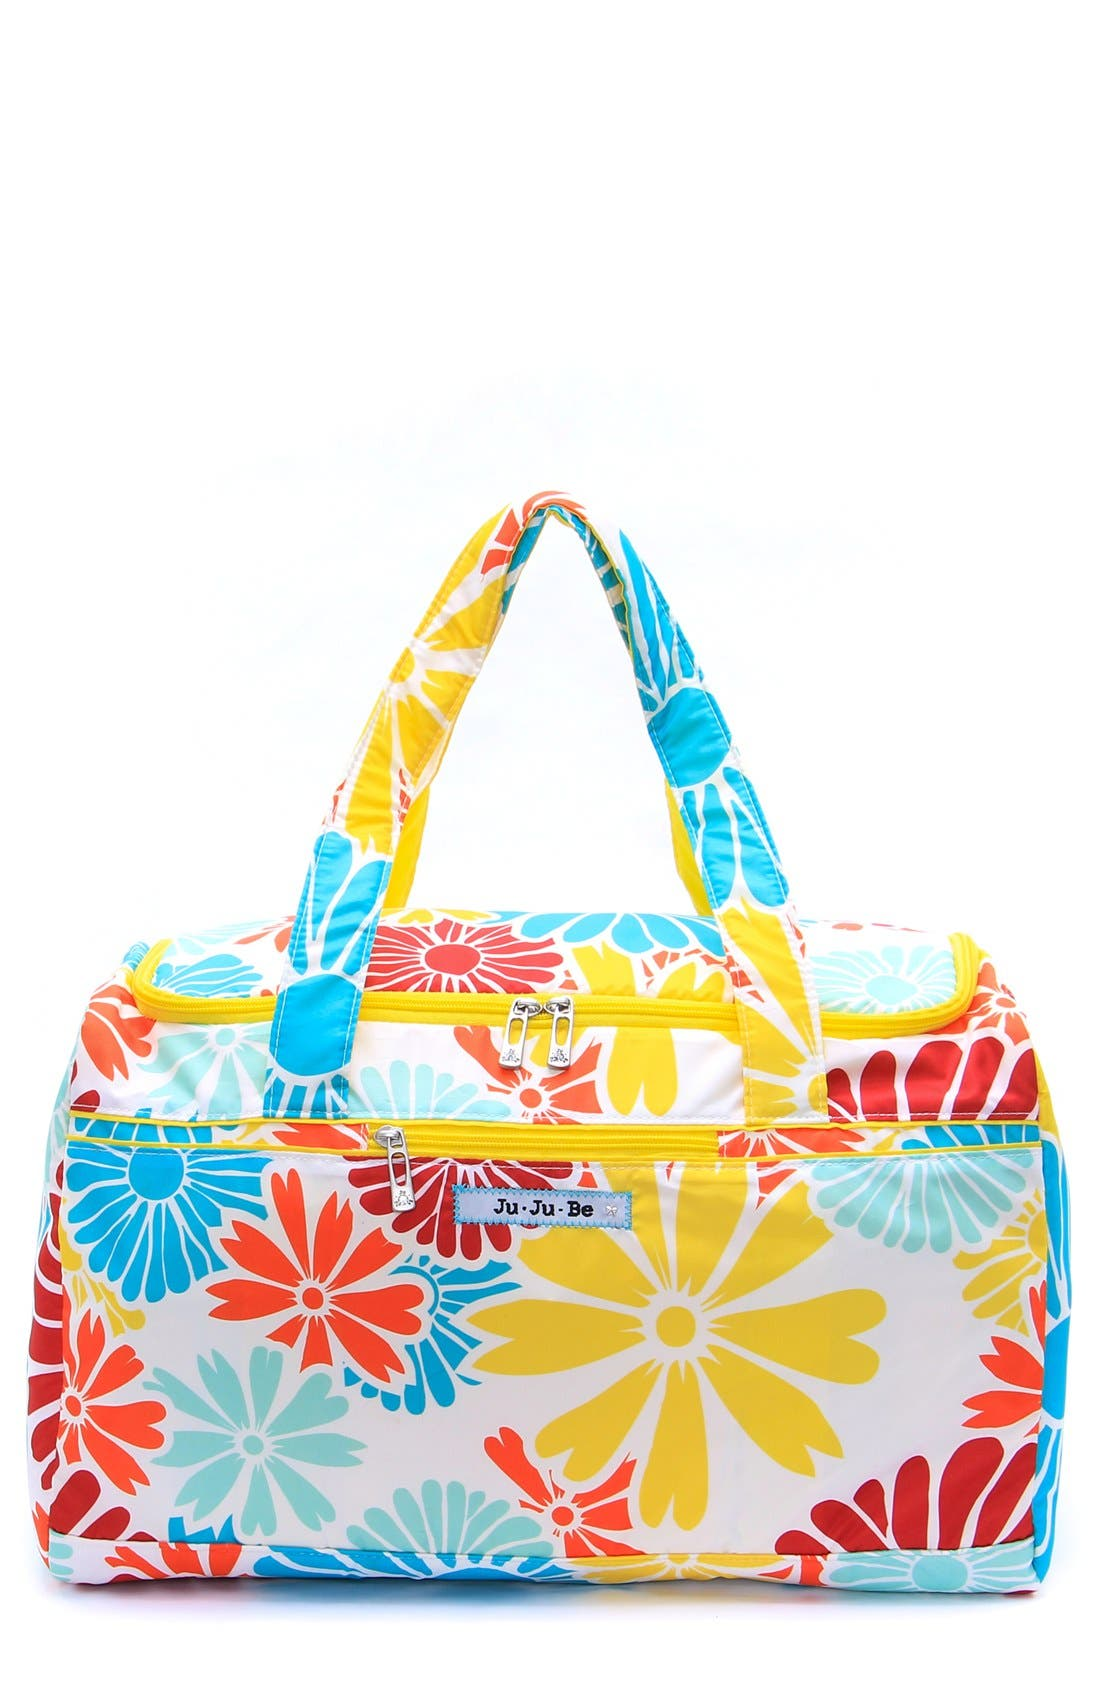 'Starlet' Travel Diaper Bag,                             Main thumbnail 8, color,